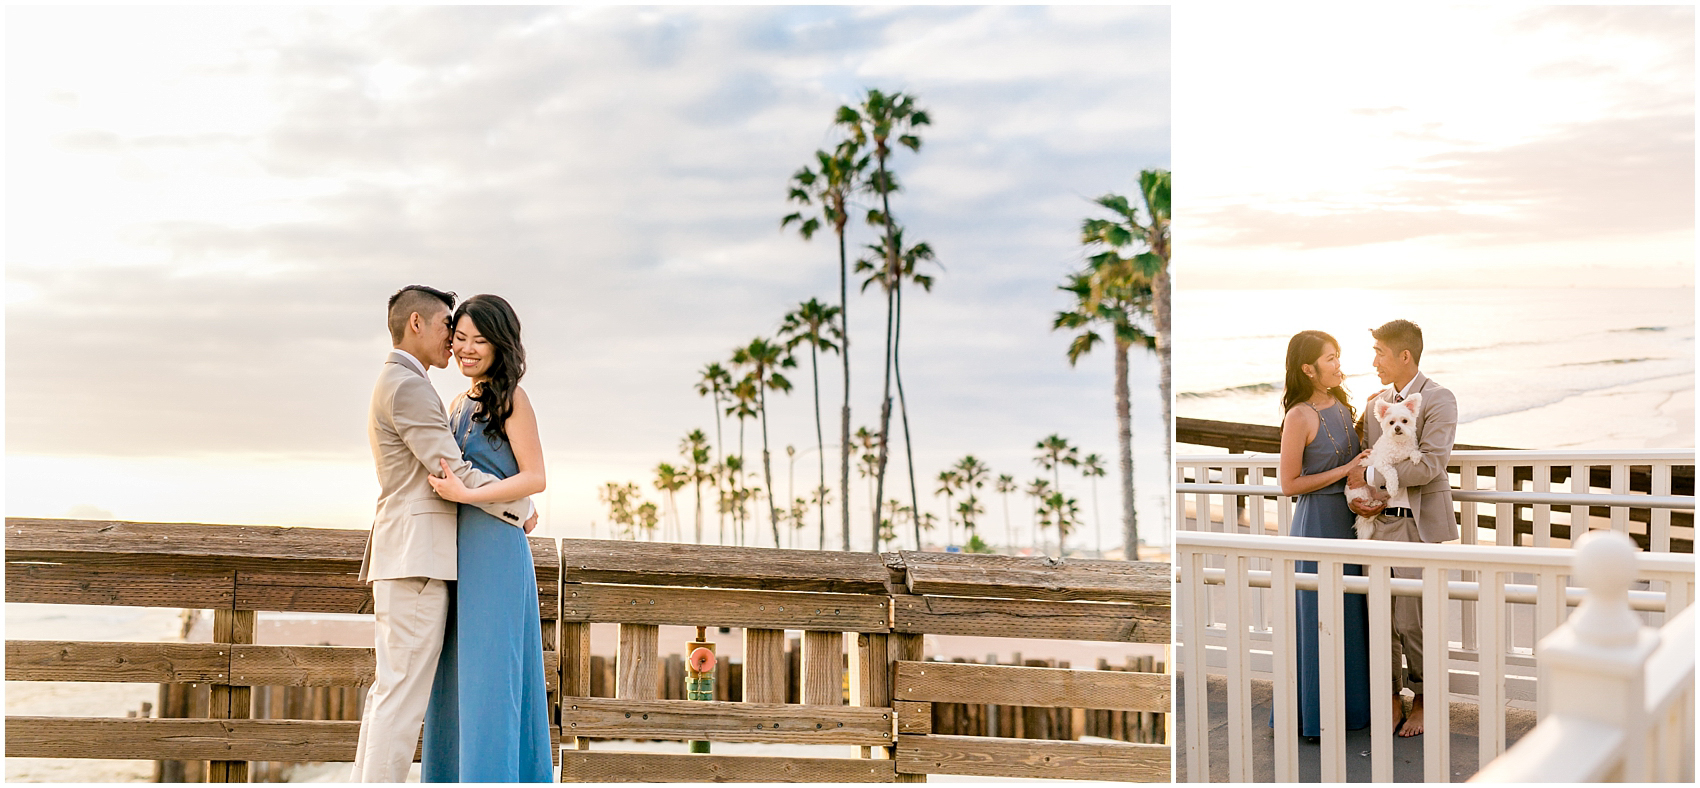 Newport Beach Engagement Photography Smetona Photo Bonnie Tim-0018.jpg